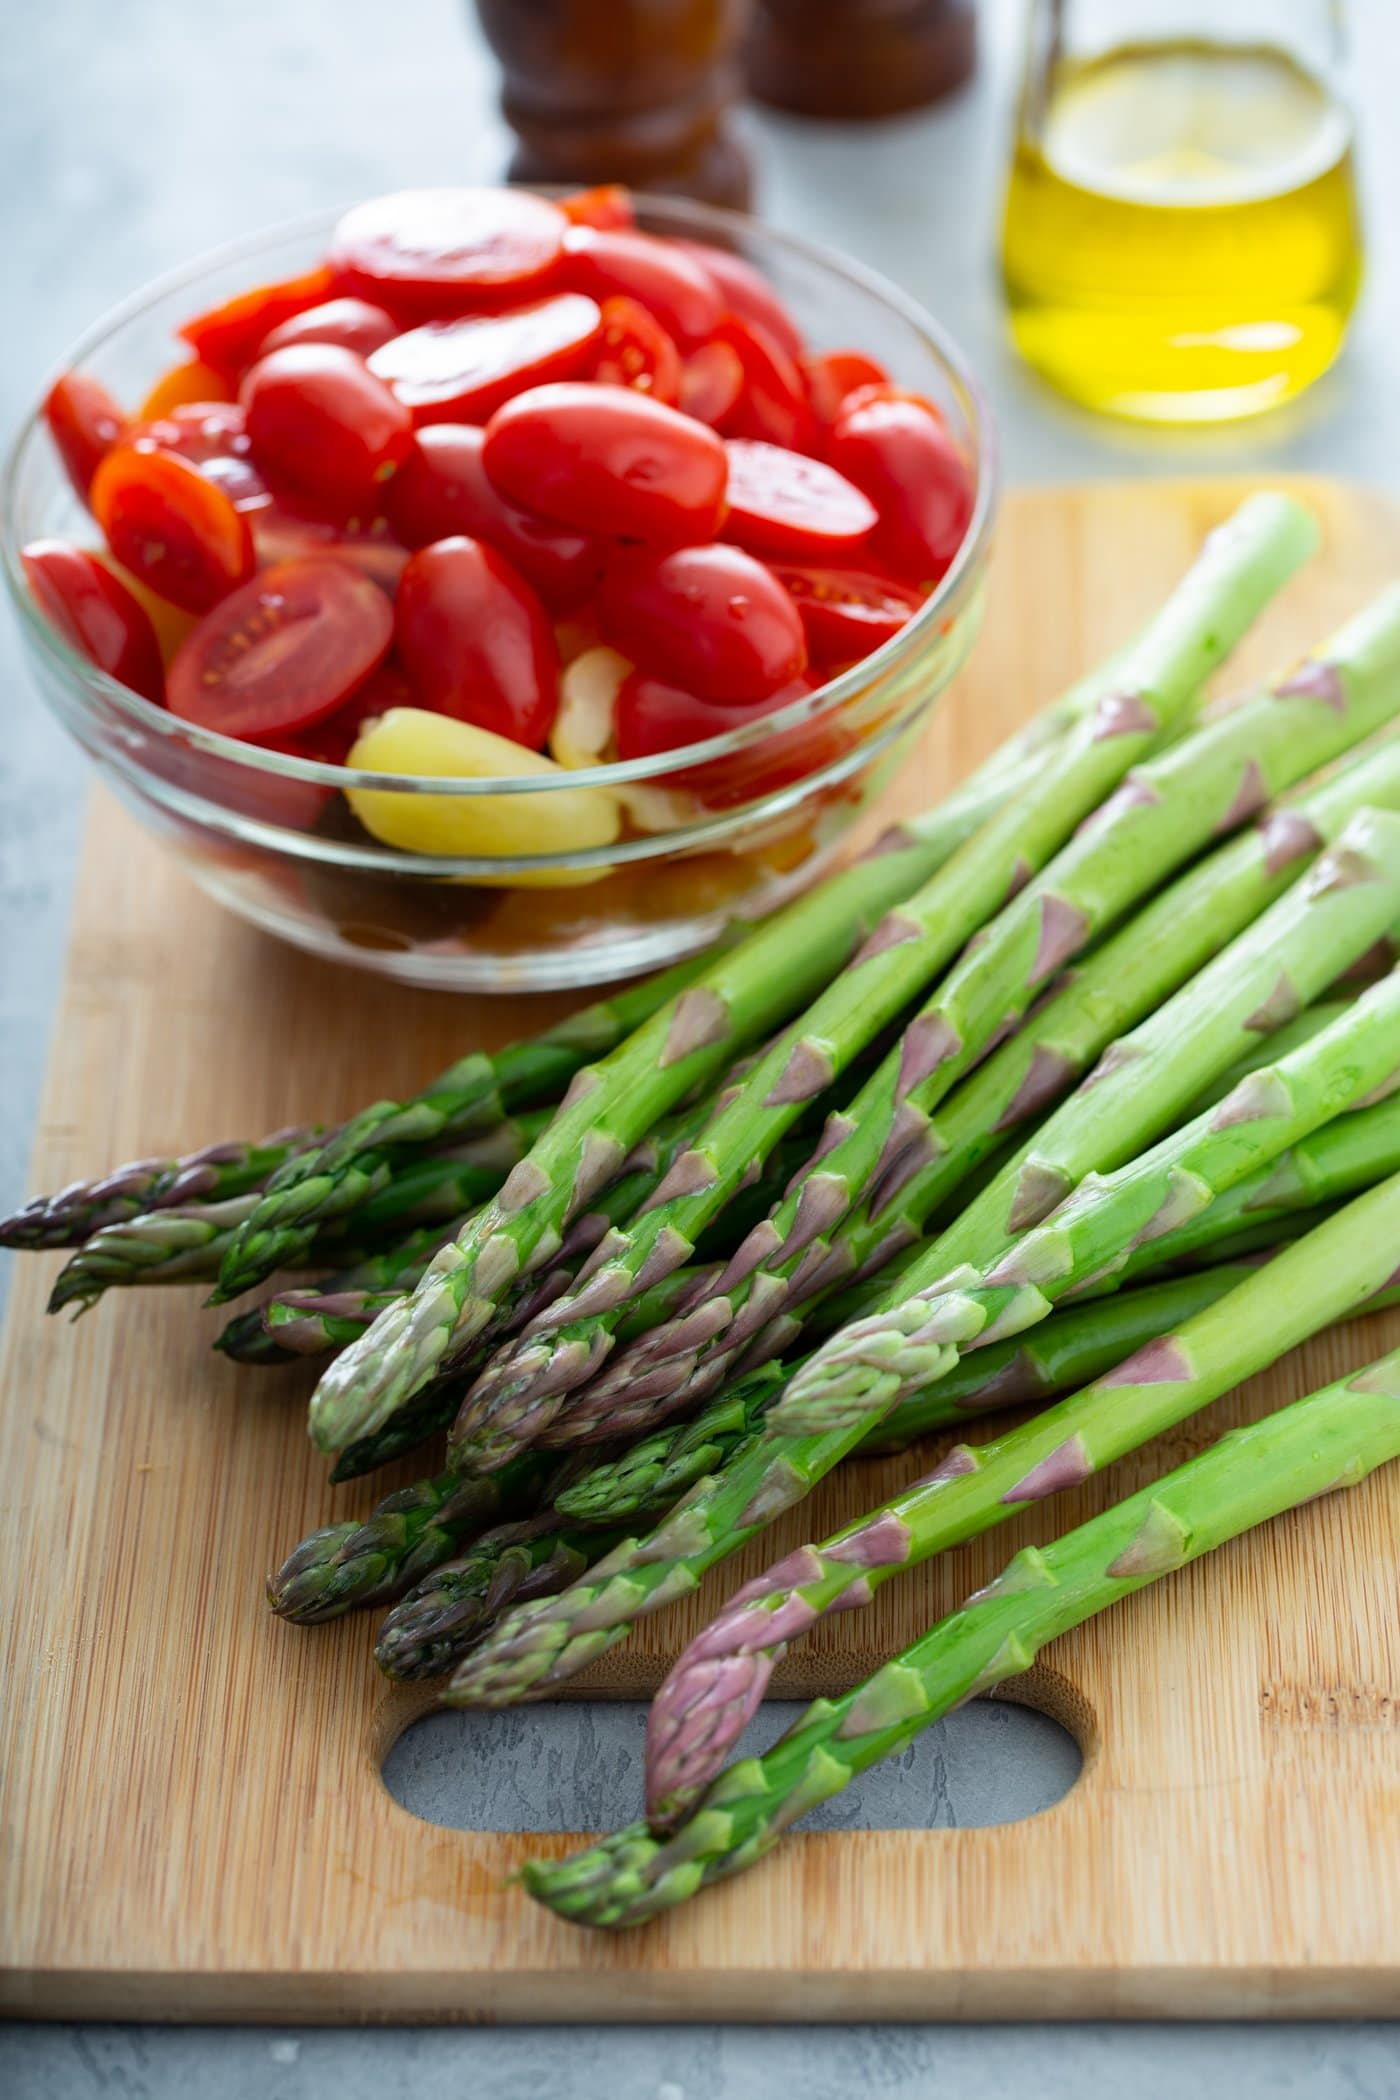 A bunch of fresh asparagus on a wood cutting board. There is a glass bowl of sliced red and yellow heirloom tomatoes next to the asparagus. A glass container of oil is in the background.